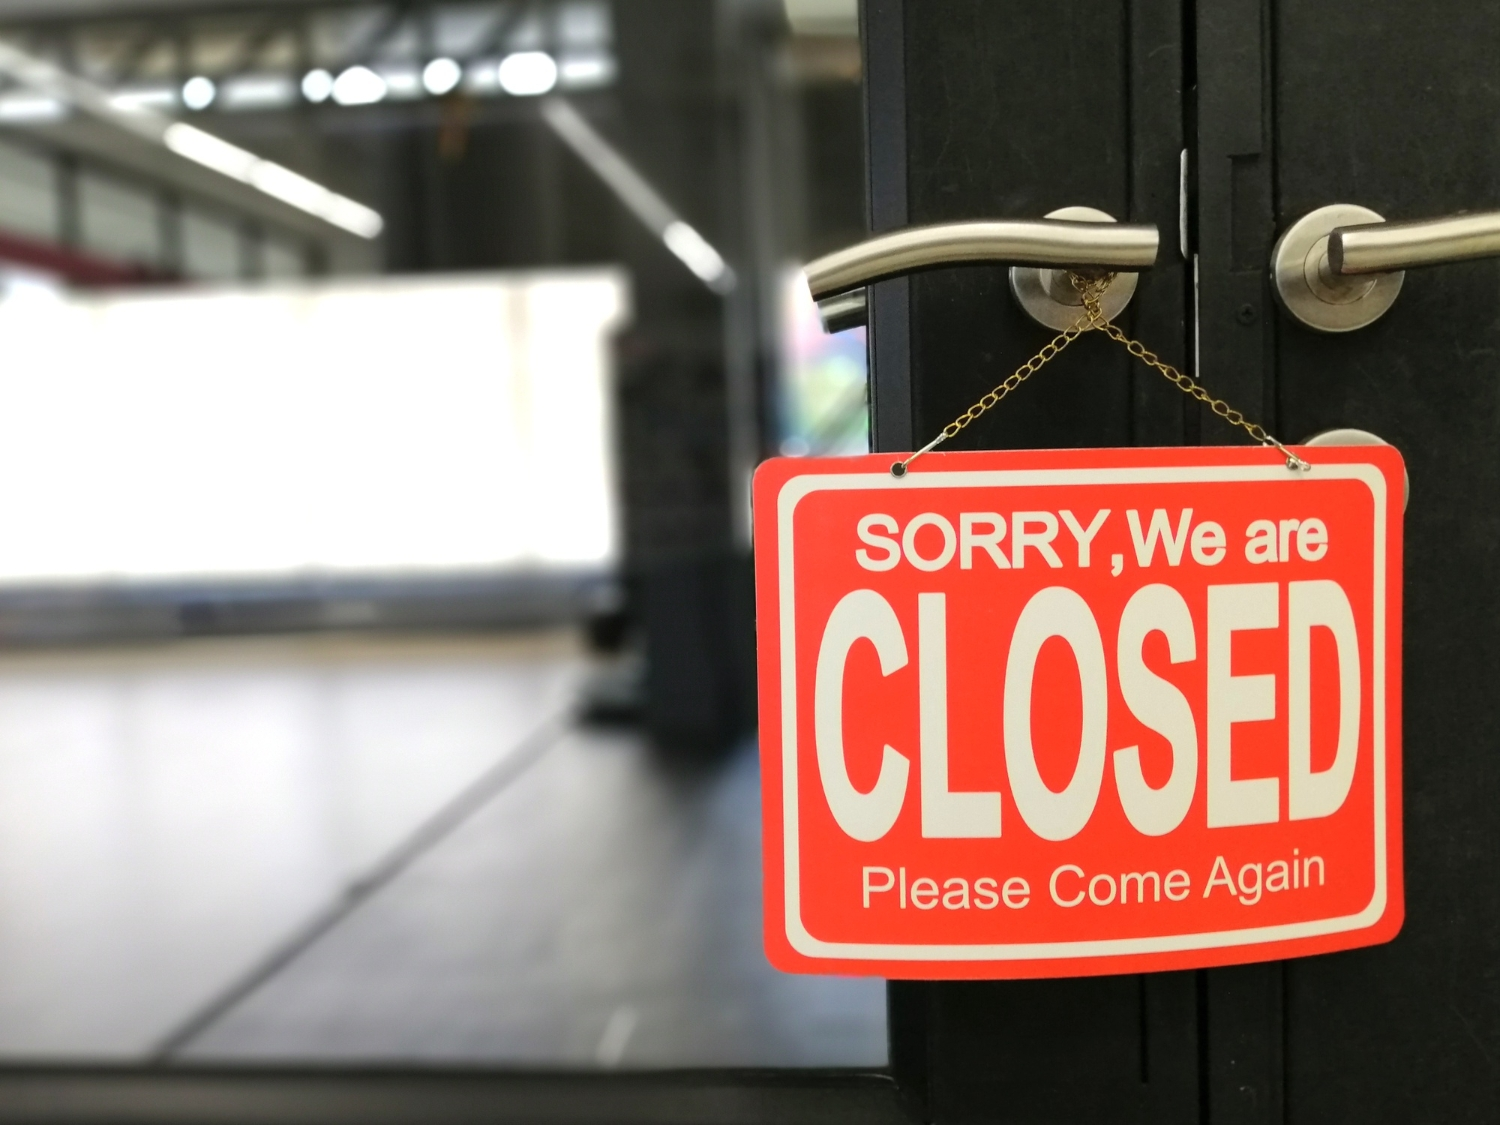 Sorry we are closed door sign board